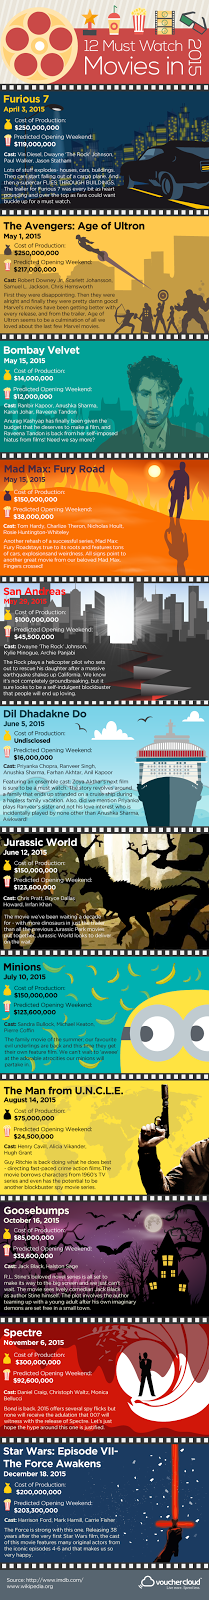 12 must watch movies in 2015, An Infographic